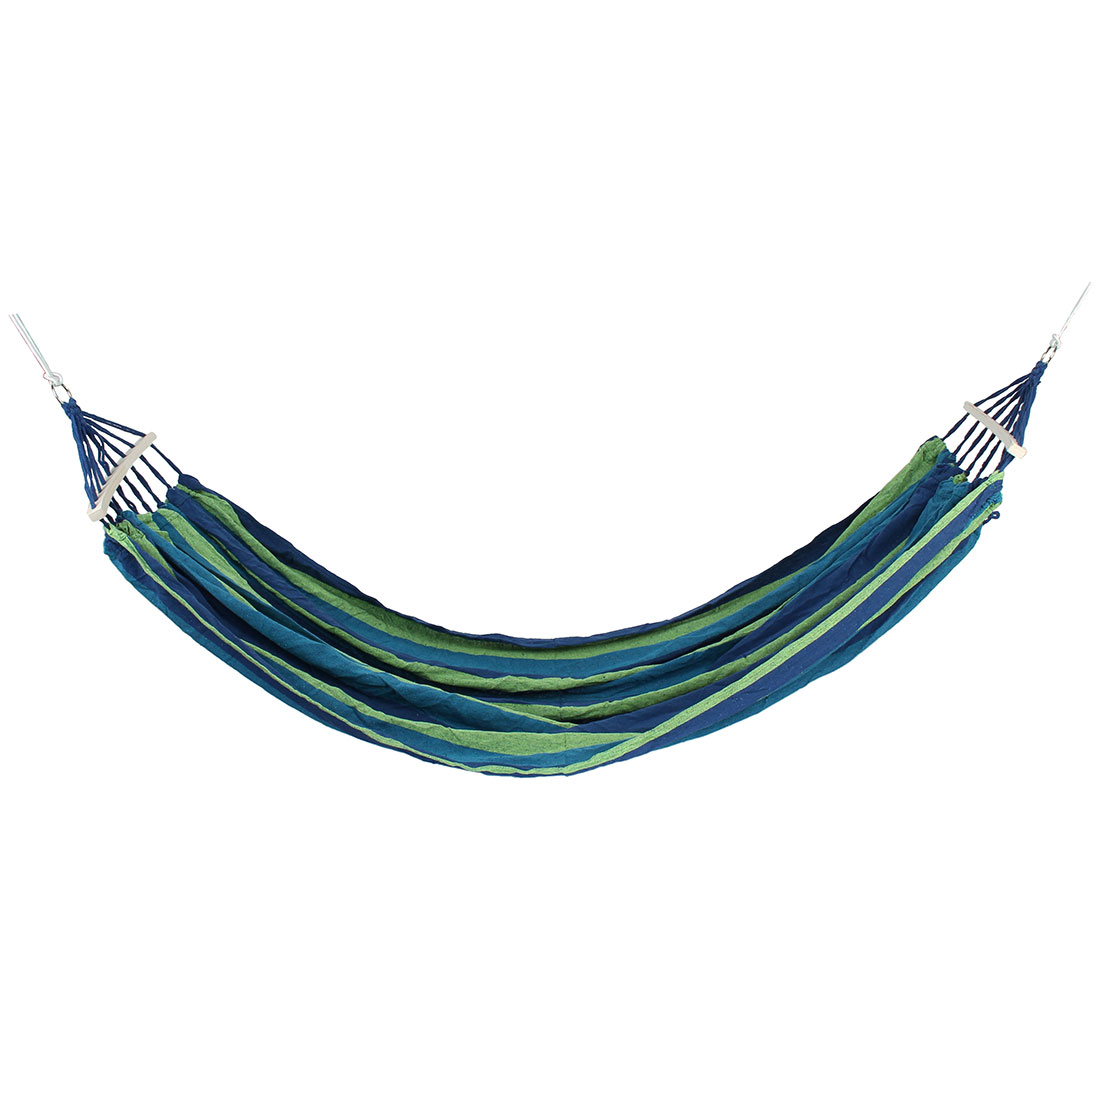 Outdoor Camping Travel Canvas Rope Swing Hanging Sleeping Bed Double Parachute Hammock